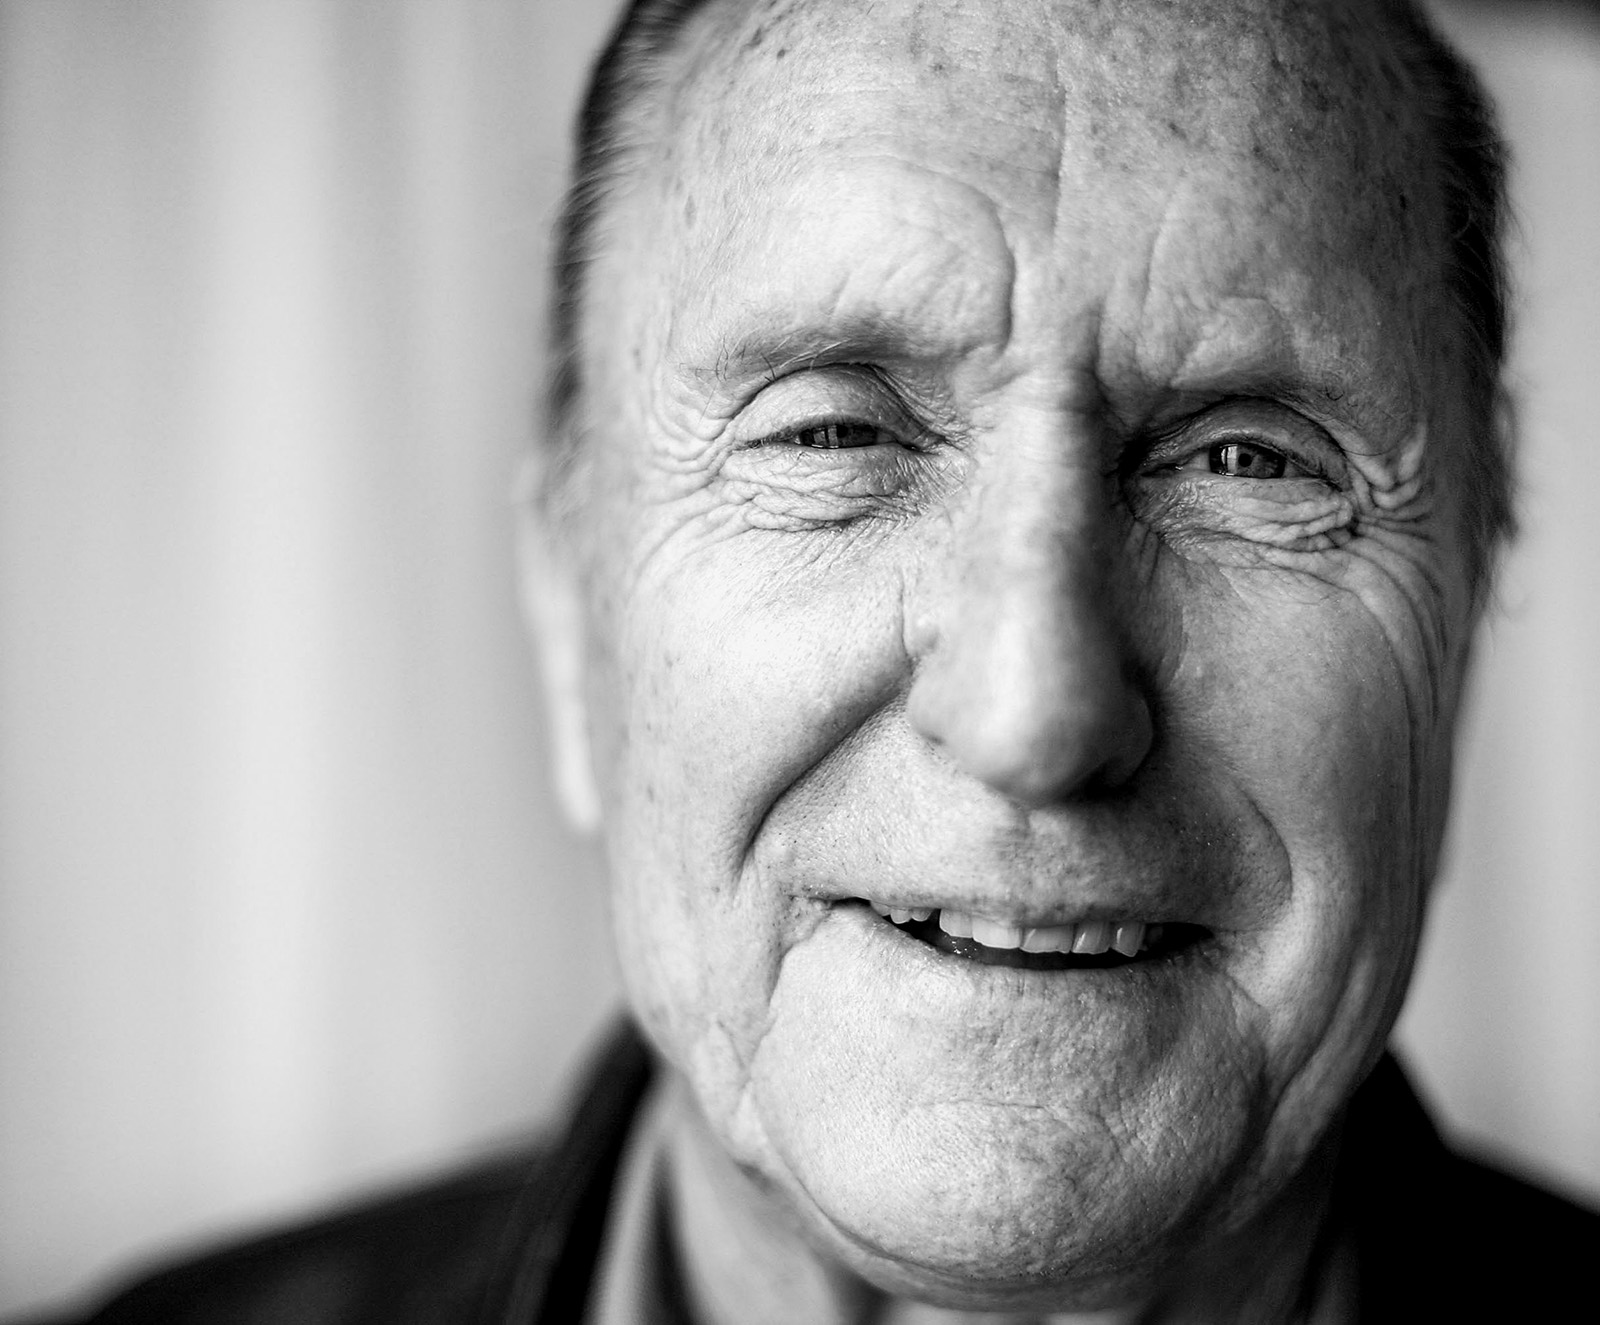 Robert Duvall Portrait photo